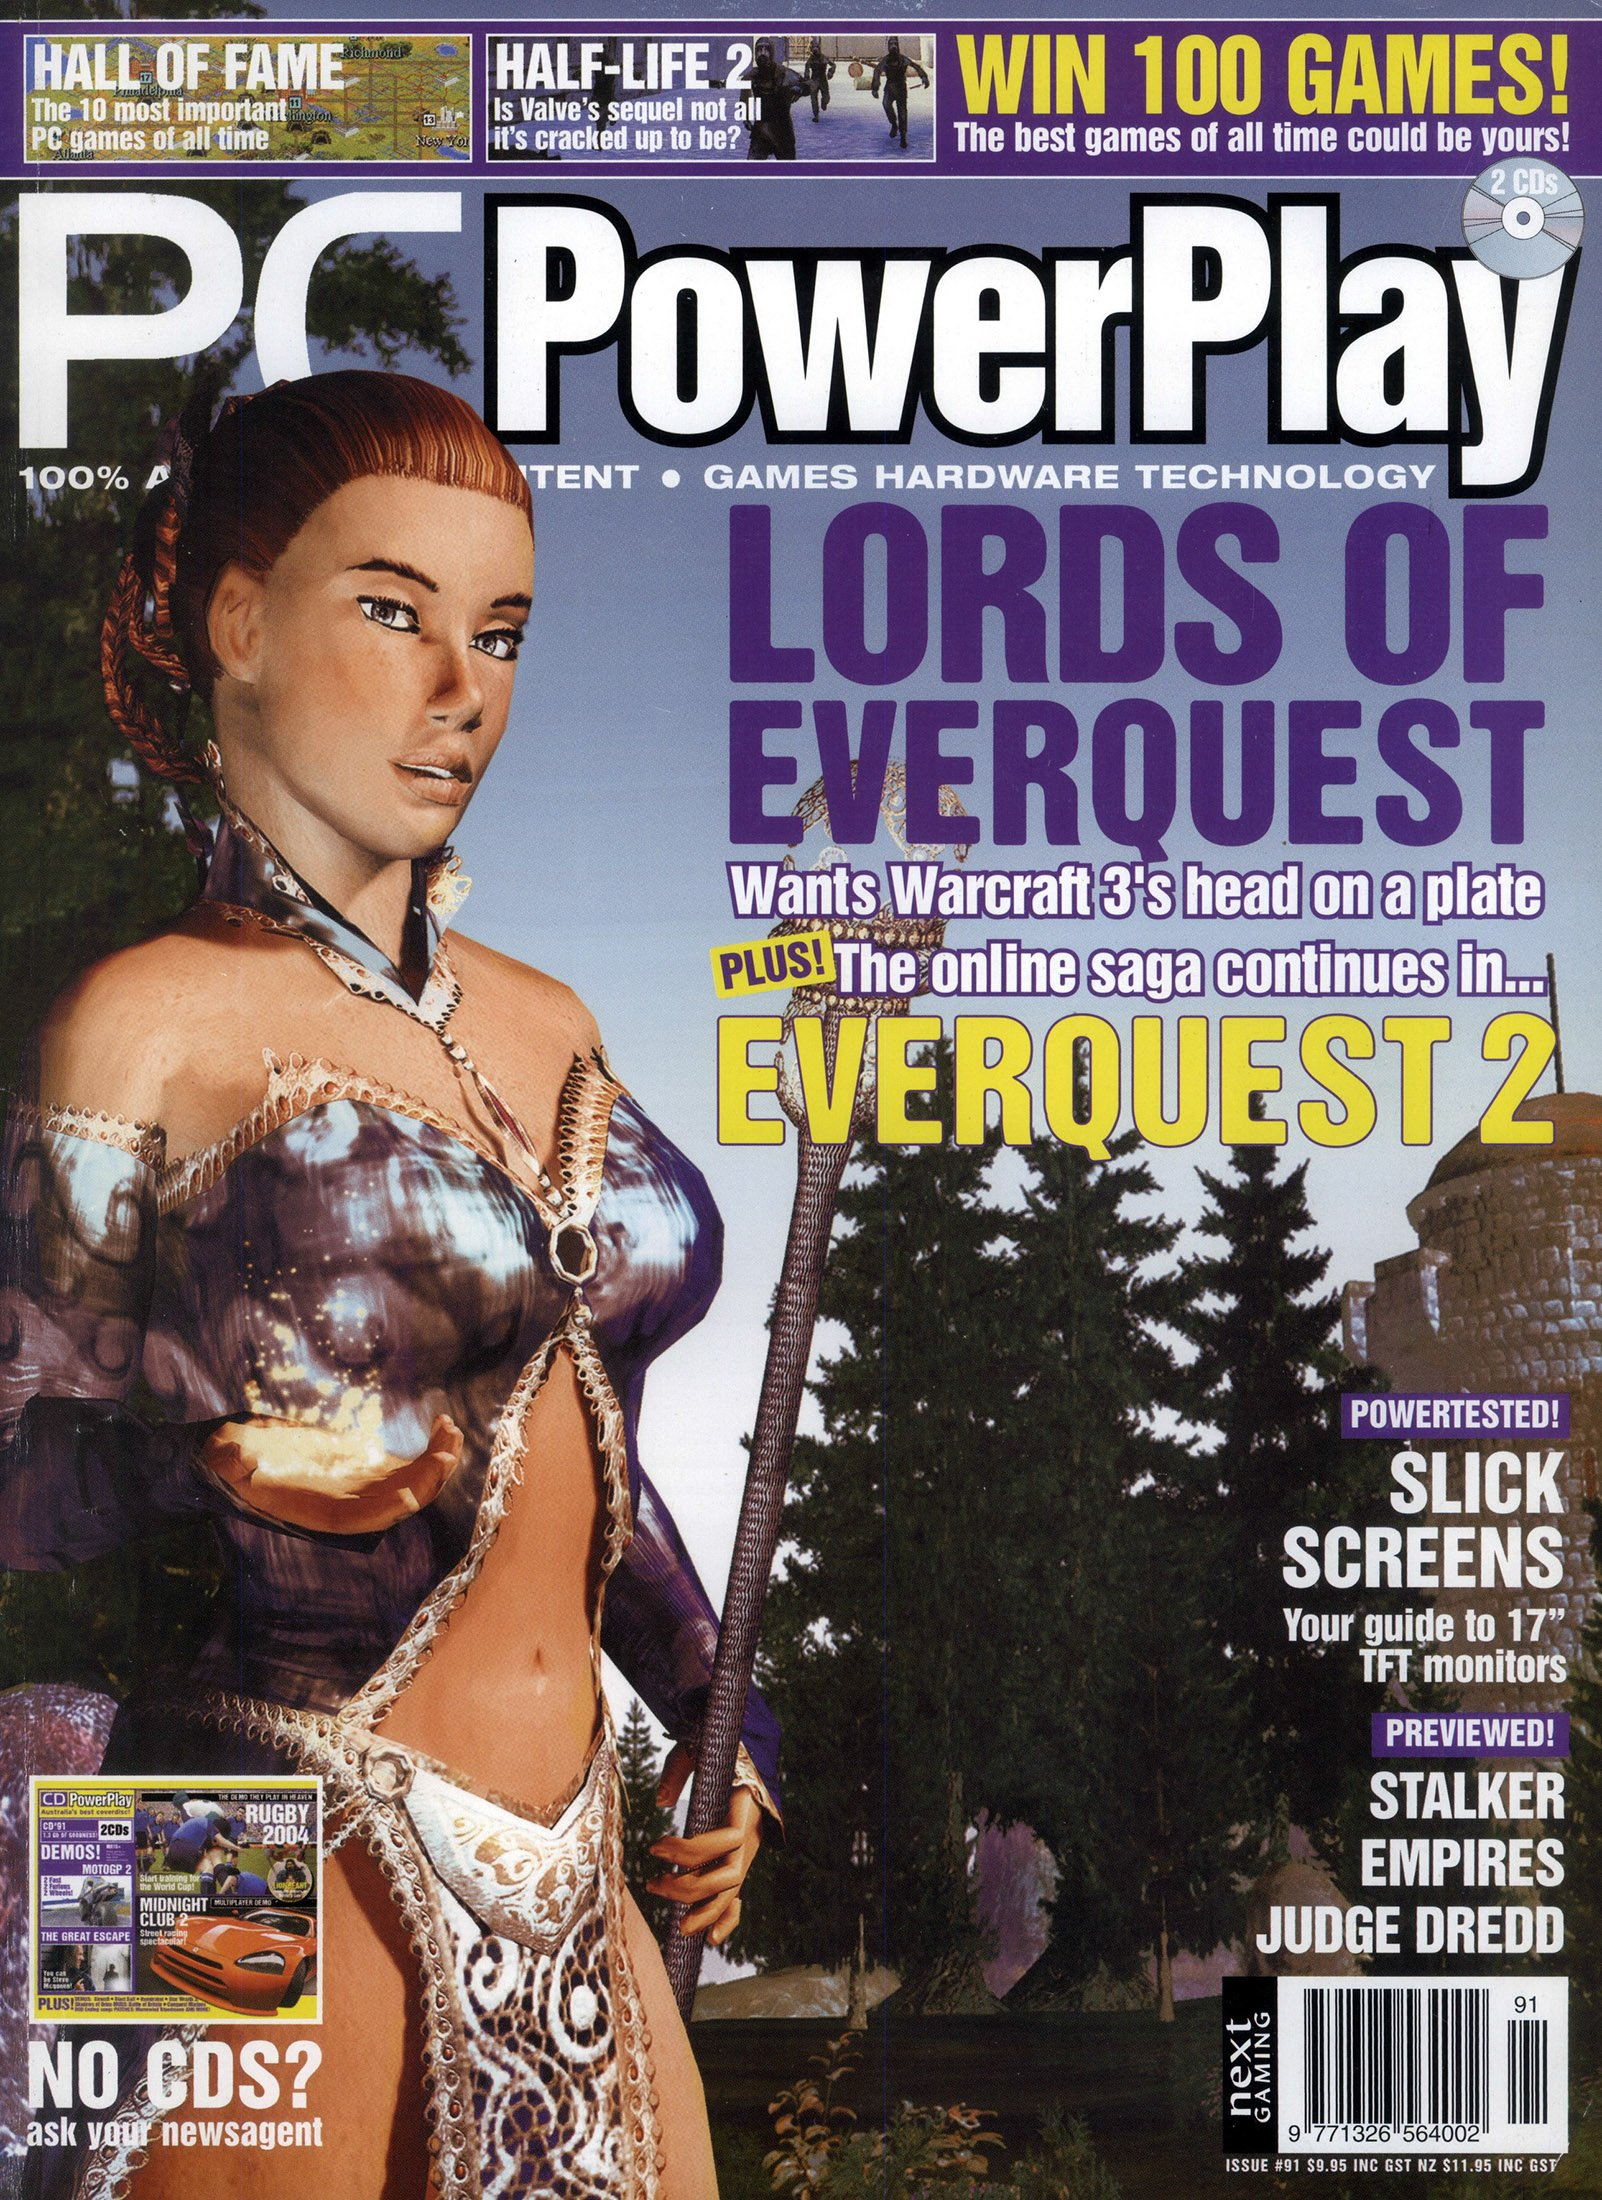 PC PowerPlay 091 (October 2003) (cover 2)